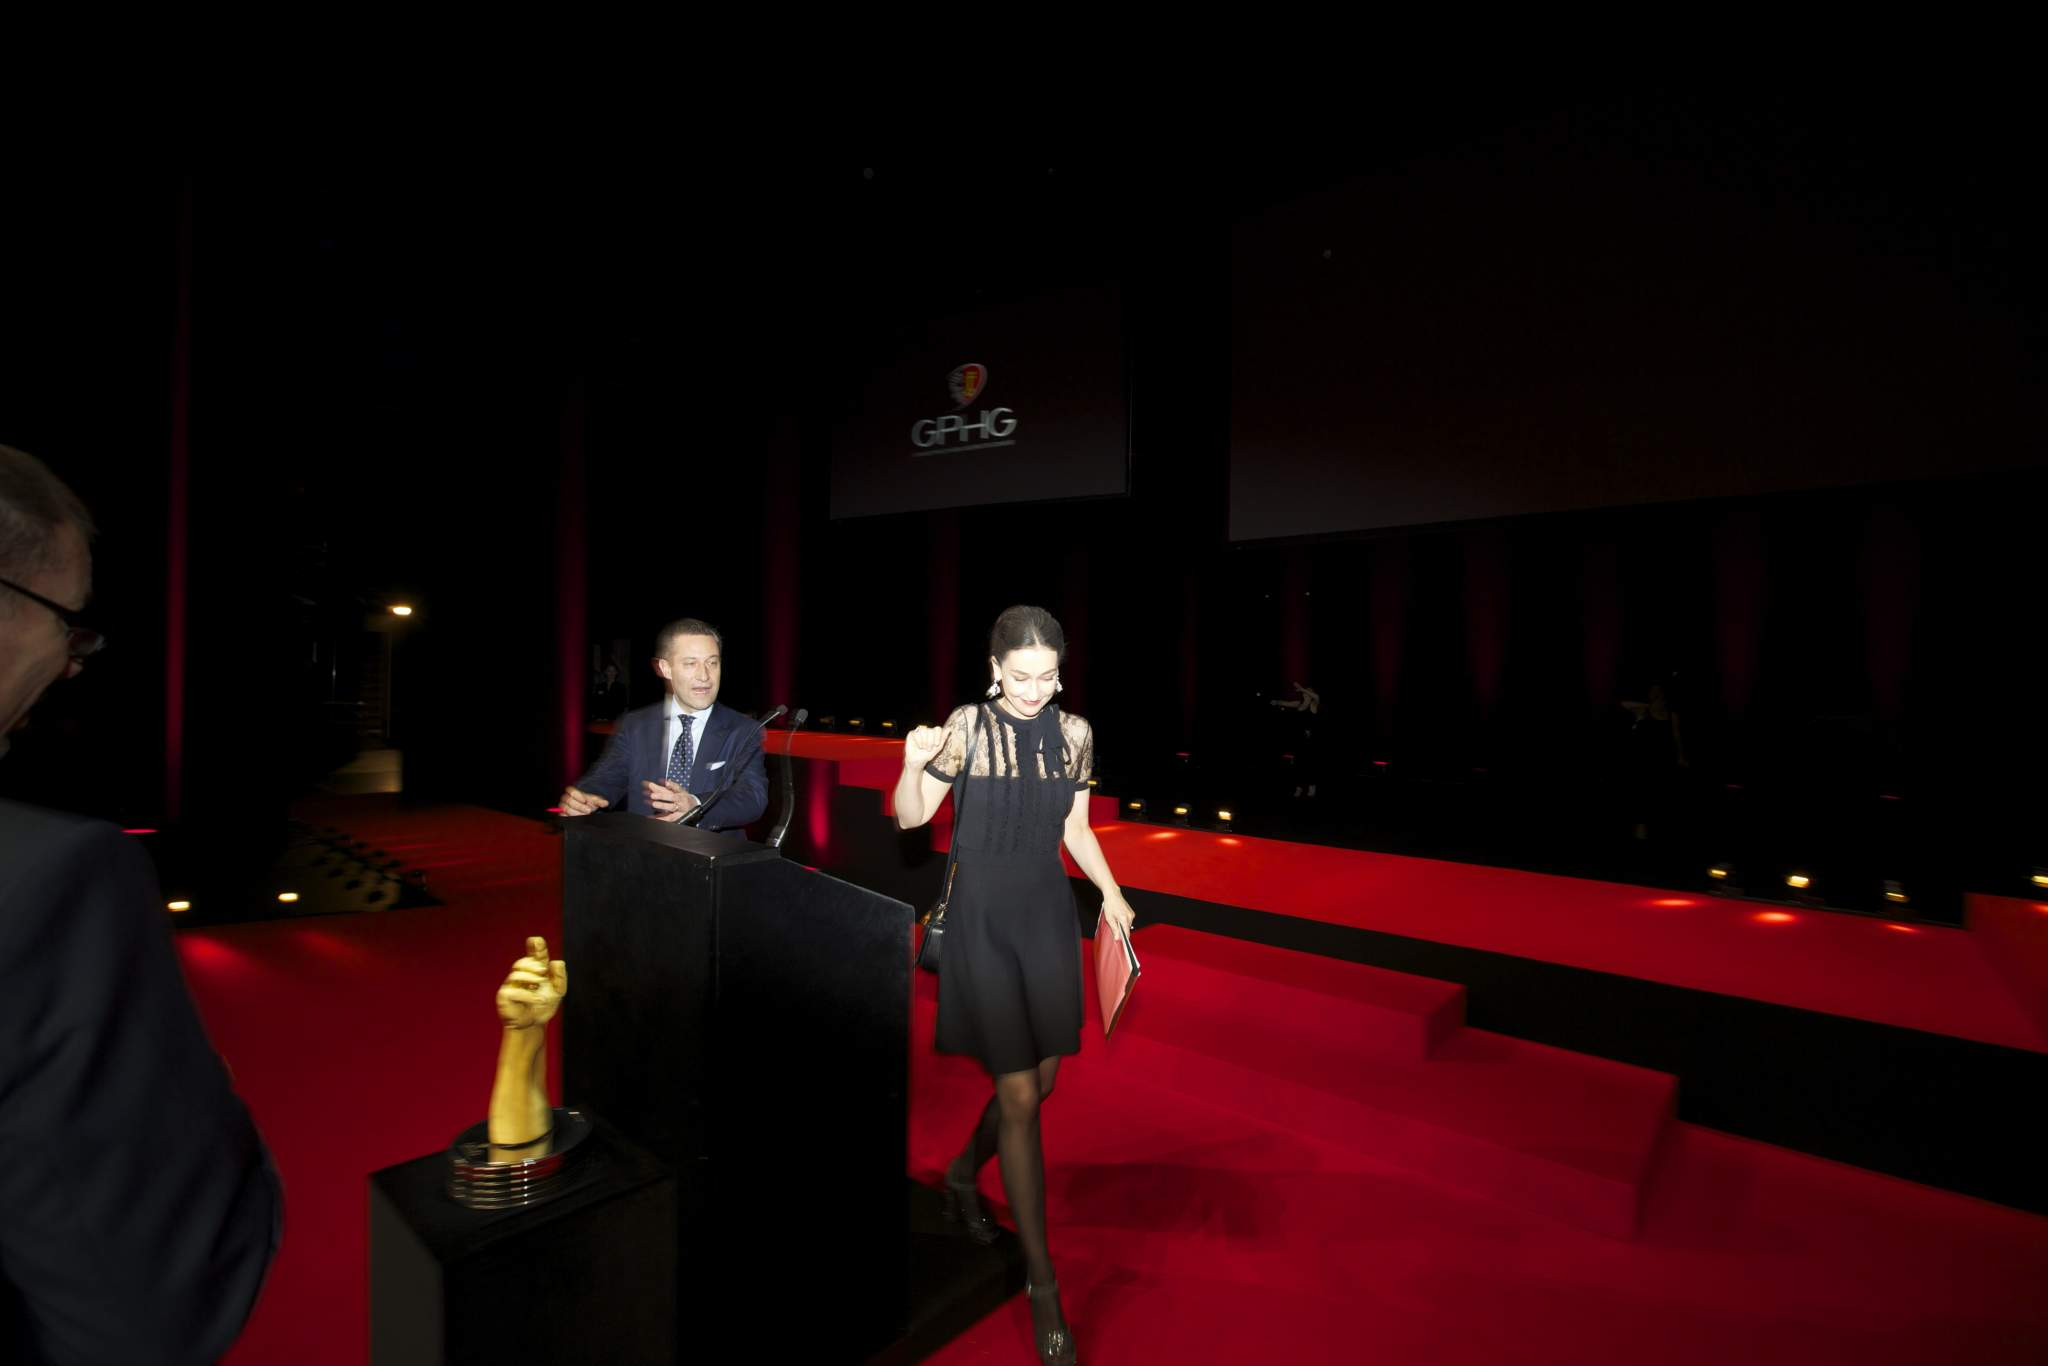 Aurel Bacs (President of the jury of the GPHG) and Carine Maillard (Director of the Foundation of the GPHG)